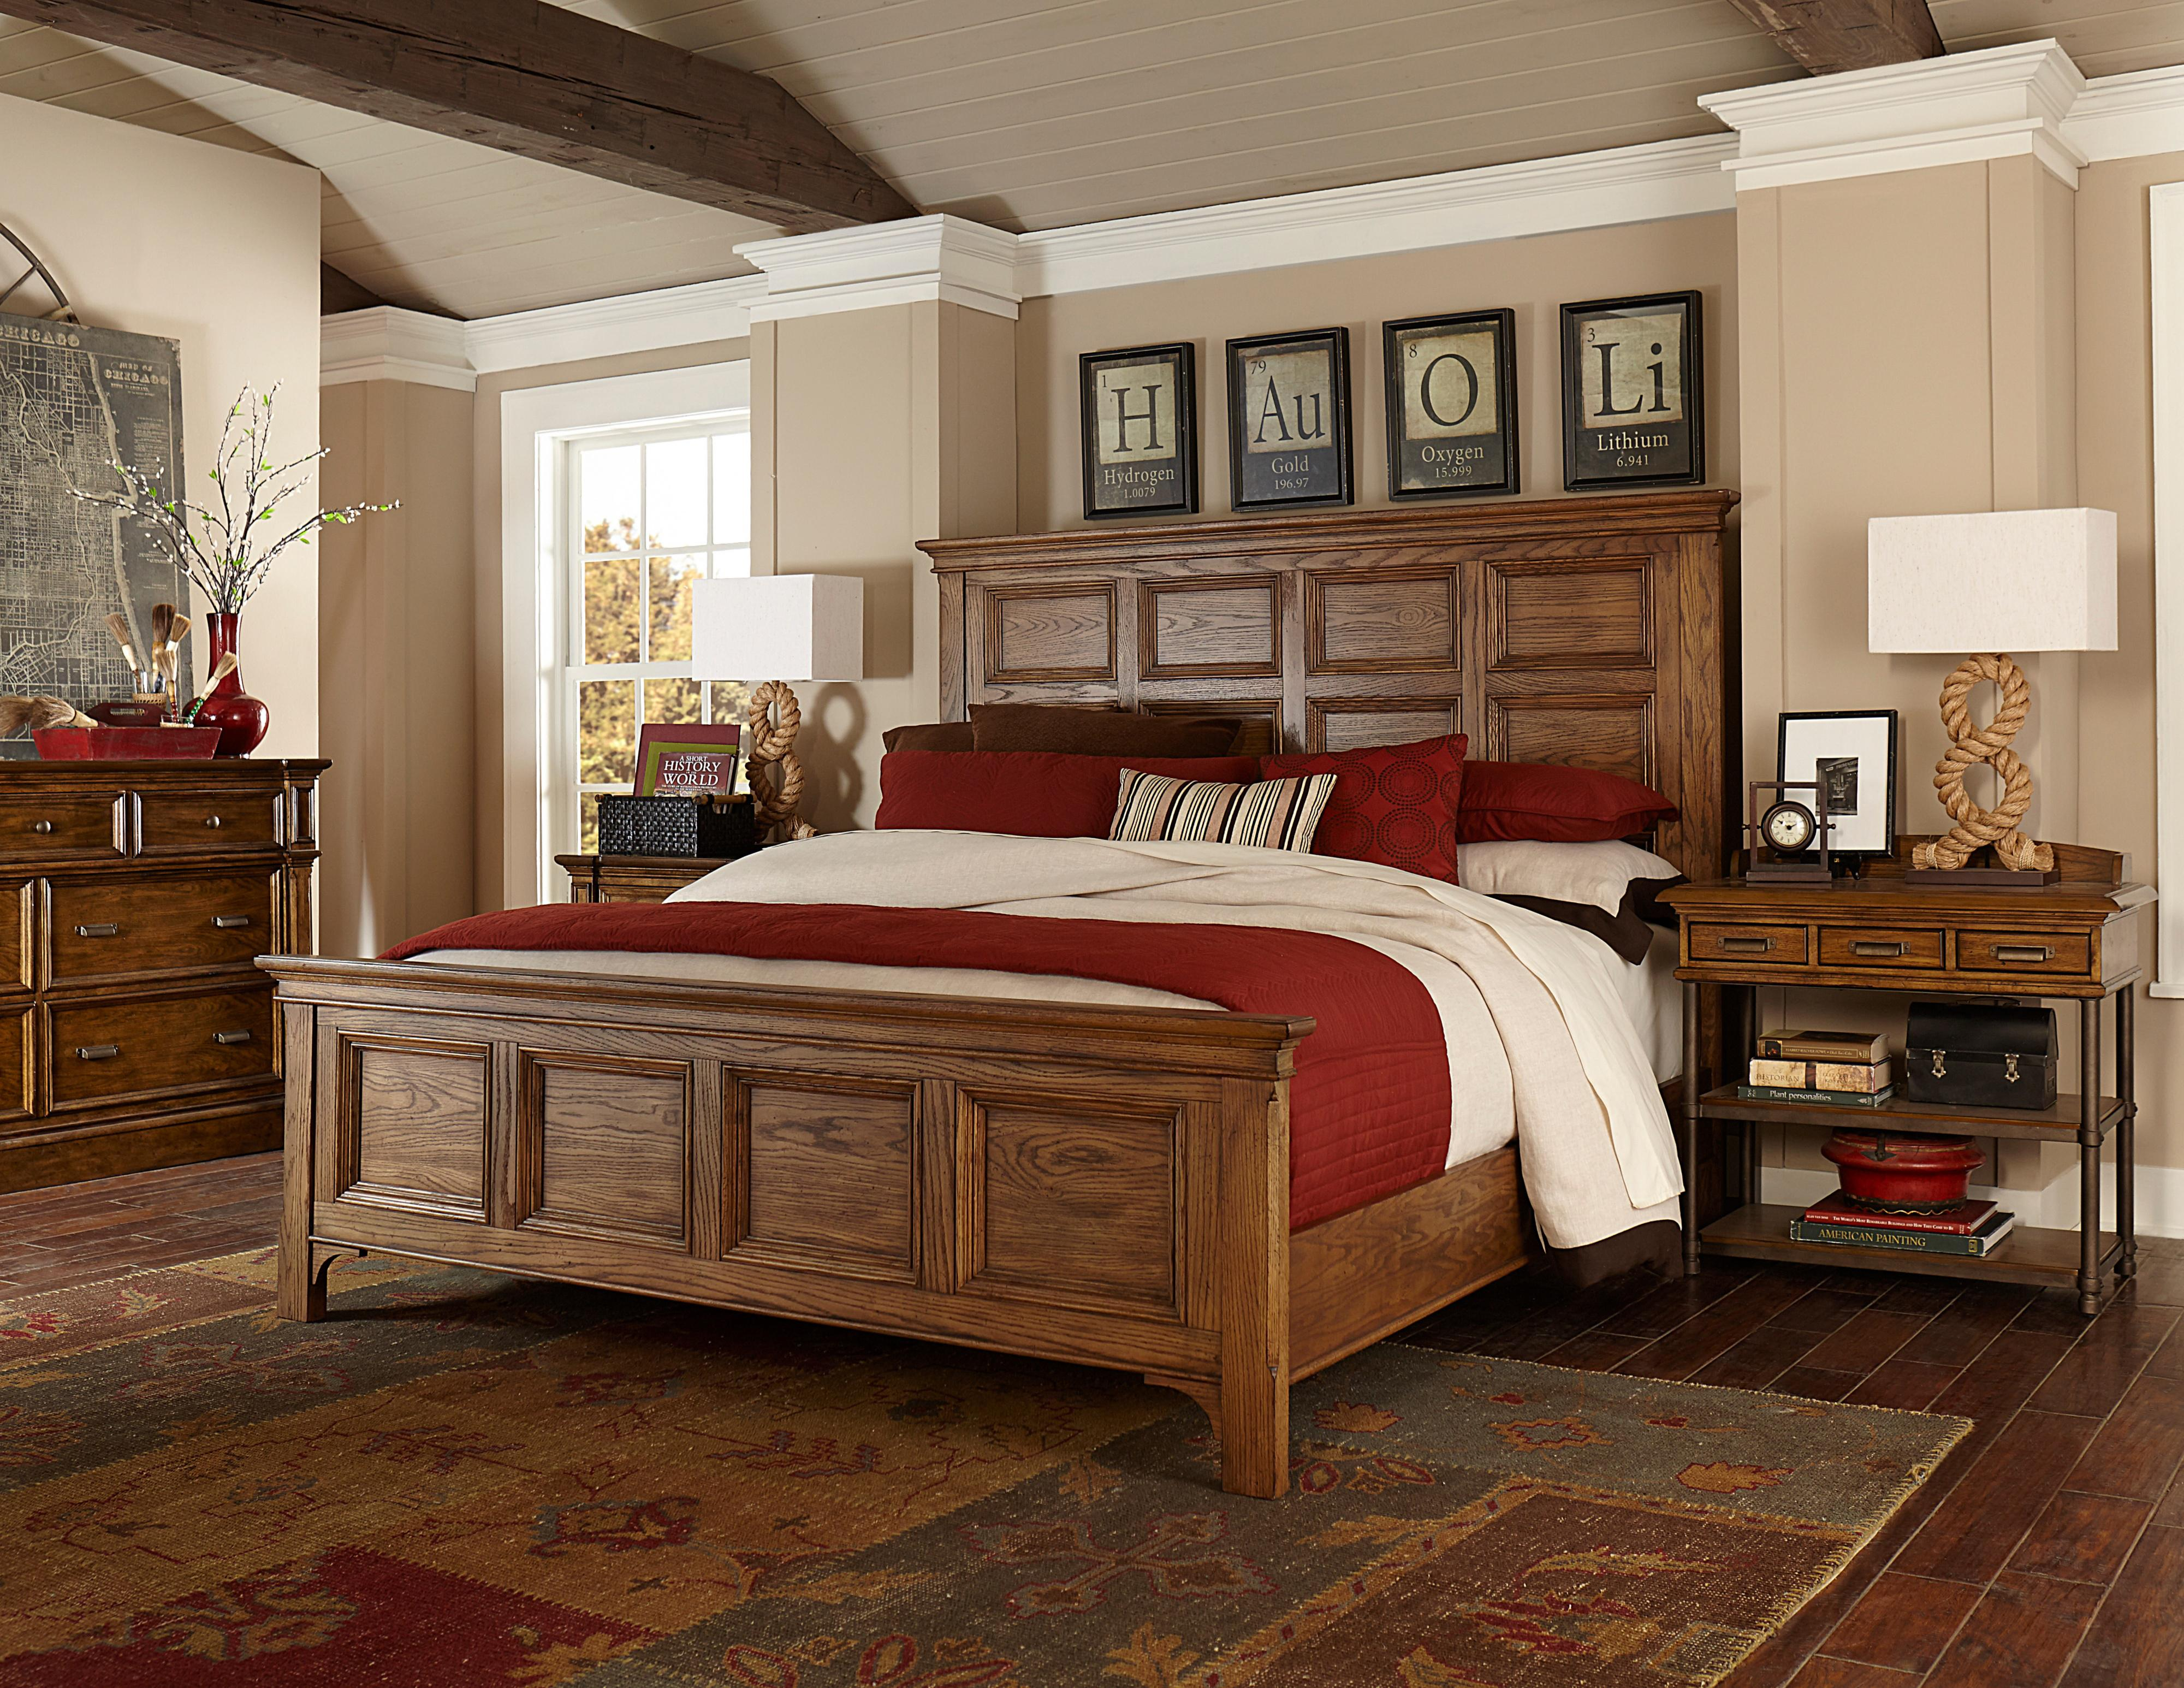 Broyhill Furniture New Vintage California King Bedroom Group - Item Number: 4808 CK Bedroom Group 1